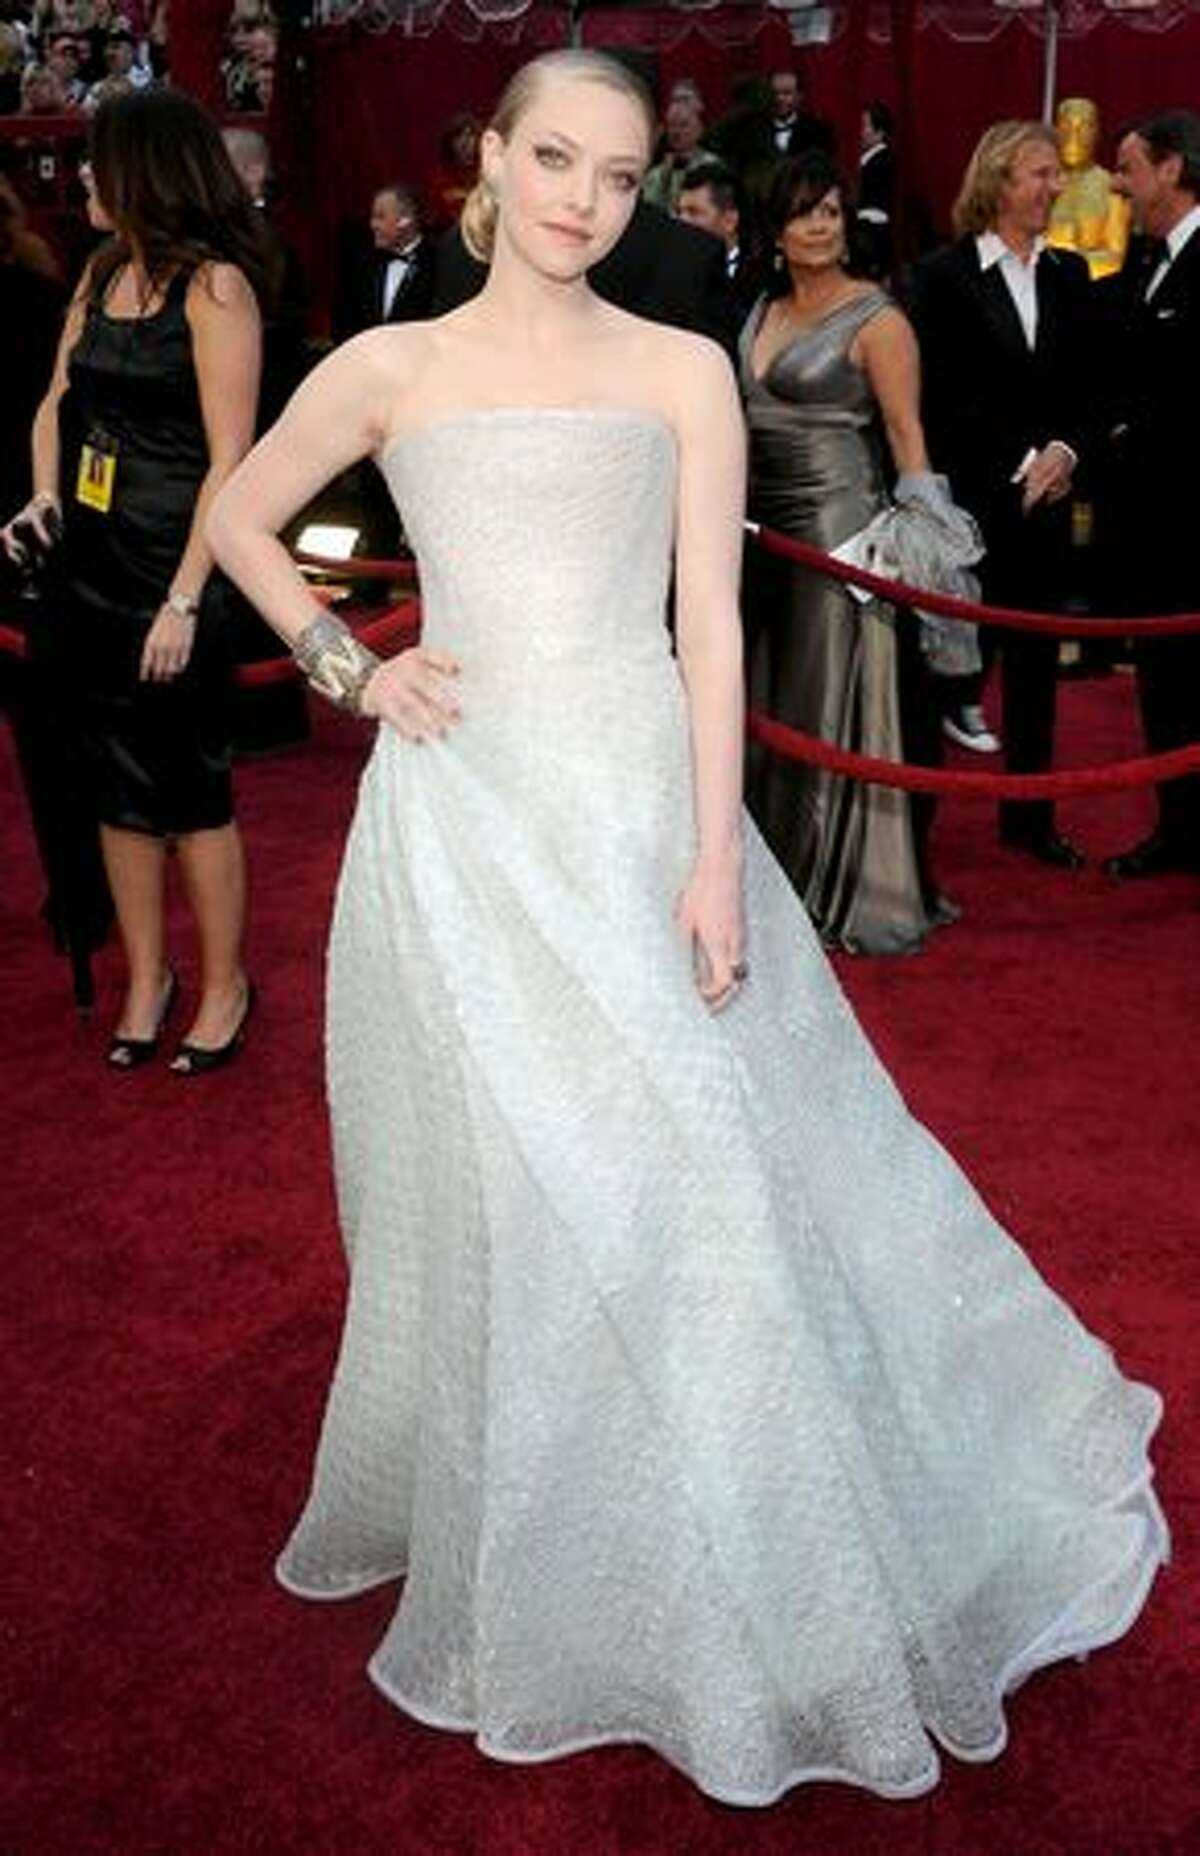 Her counterpart, Amanda Seyfried, wears Armani Privé elegantly. This is simple yet stunning.